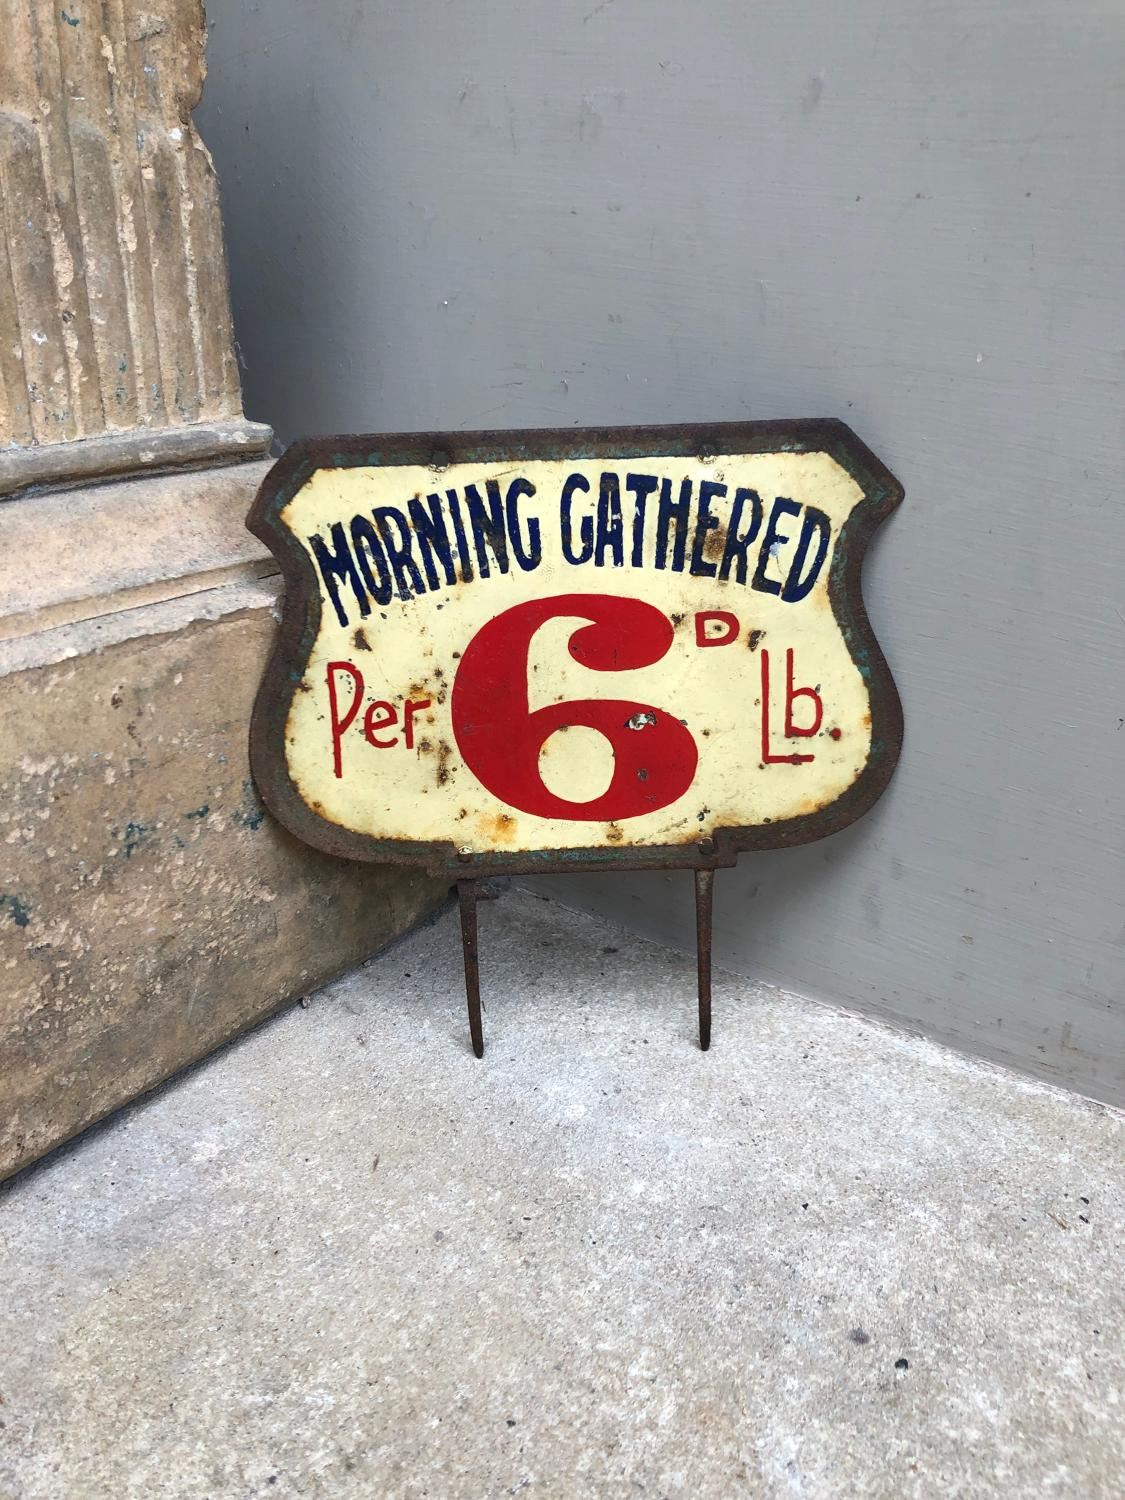 Edwardian Grocers Toleware Price Sign - Morning Gathered Per 6D LB